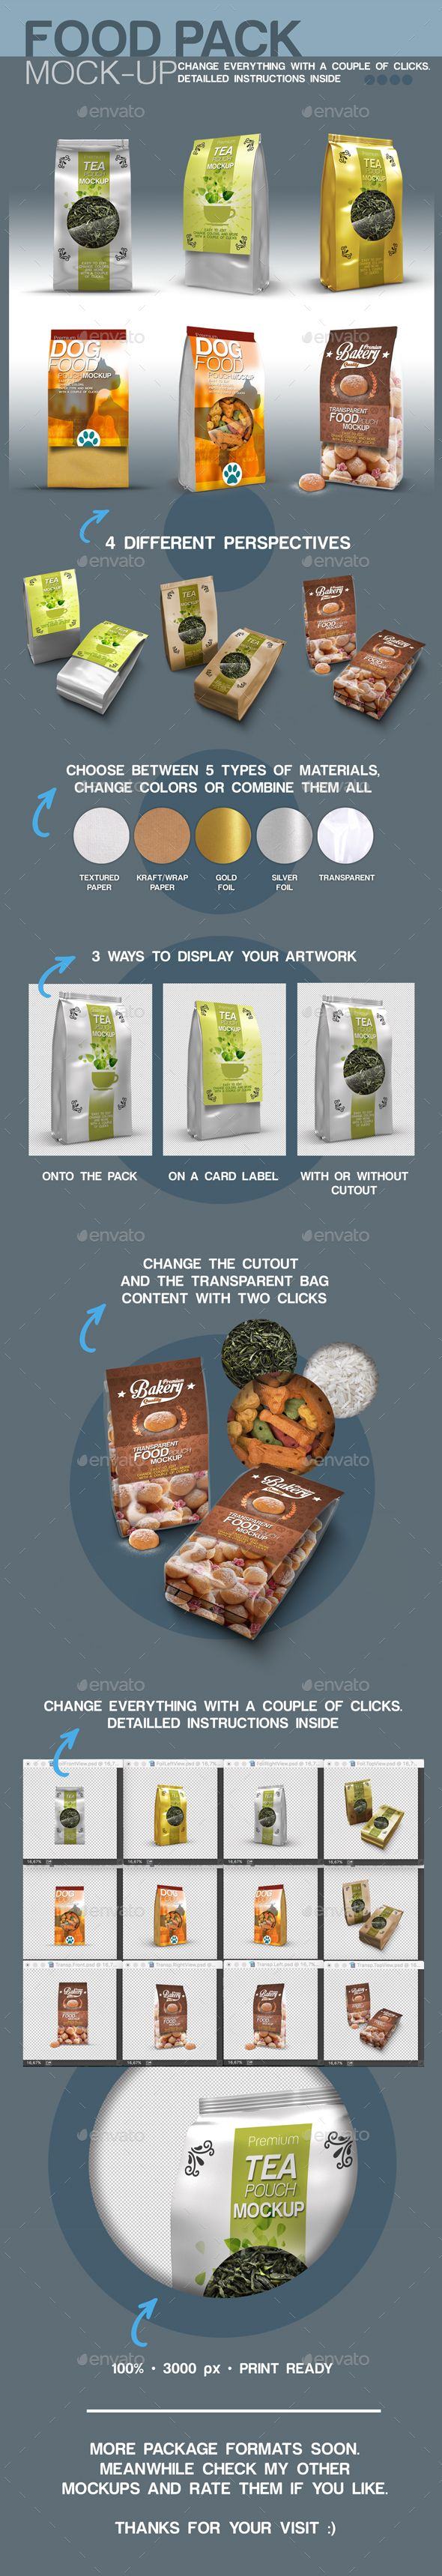 Premium Food Pack Mockup - Food and Drink Packaging